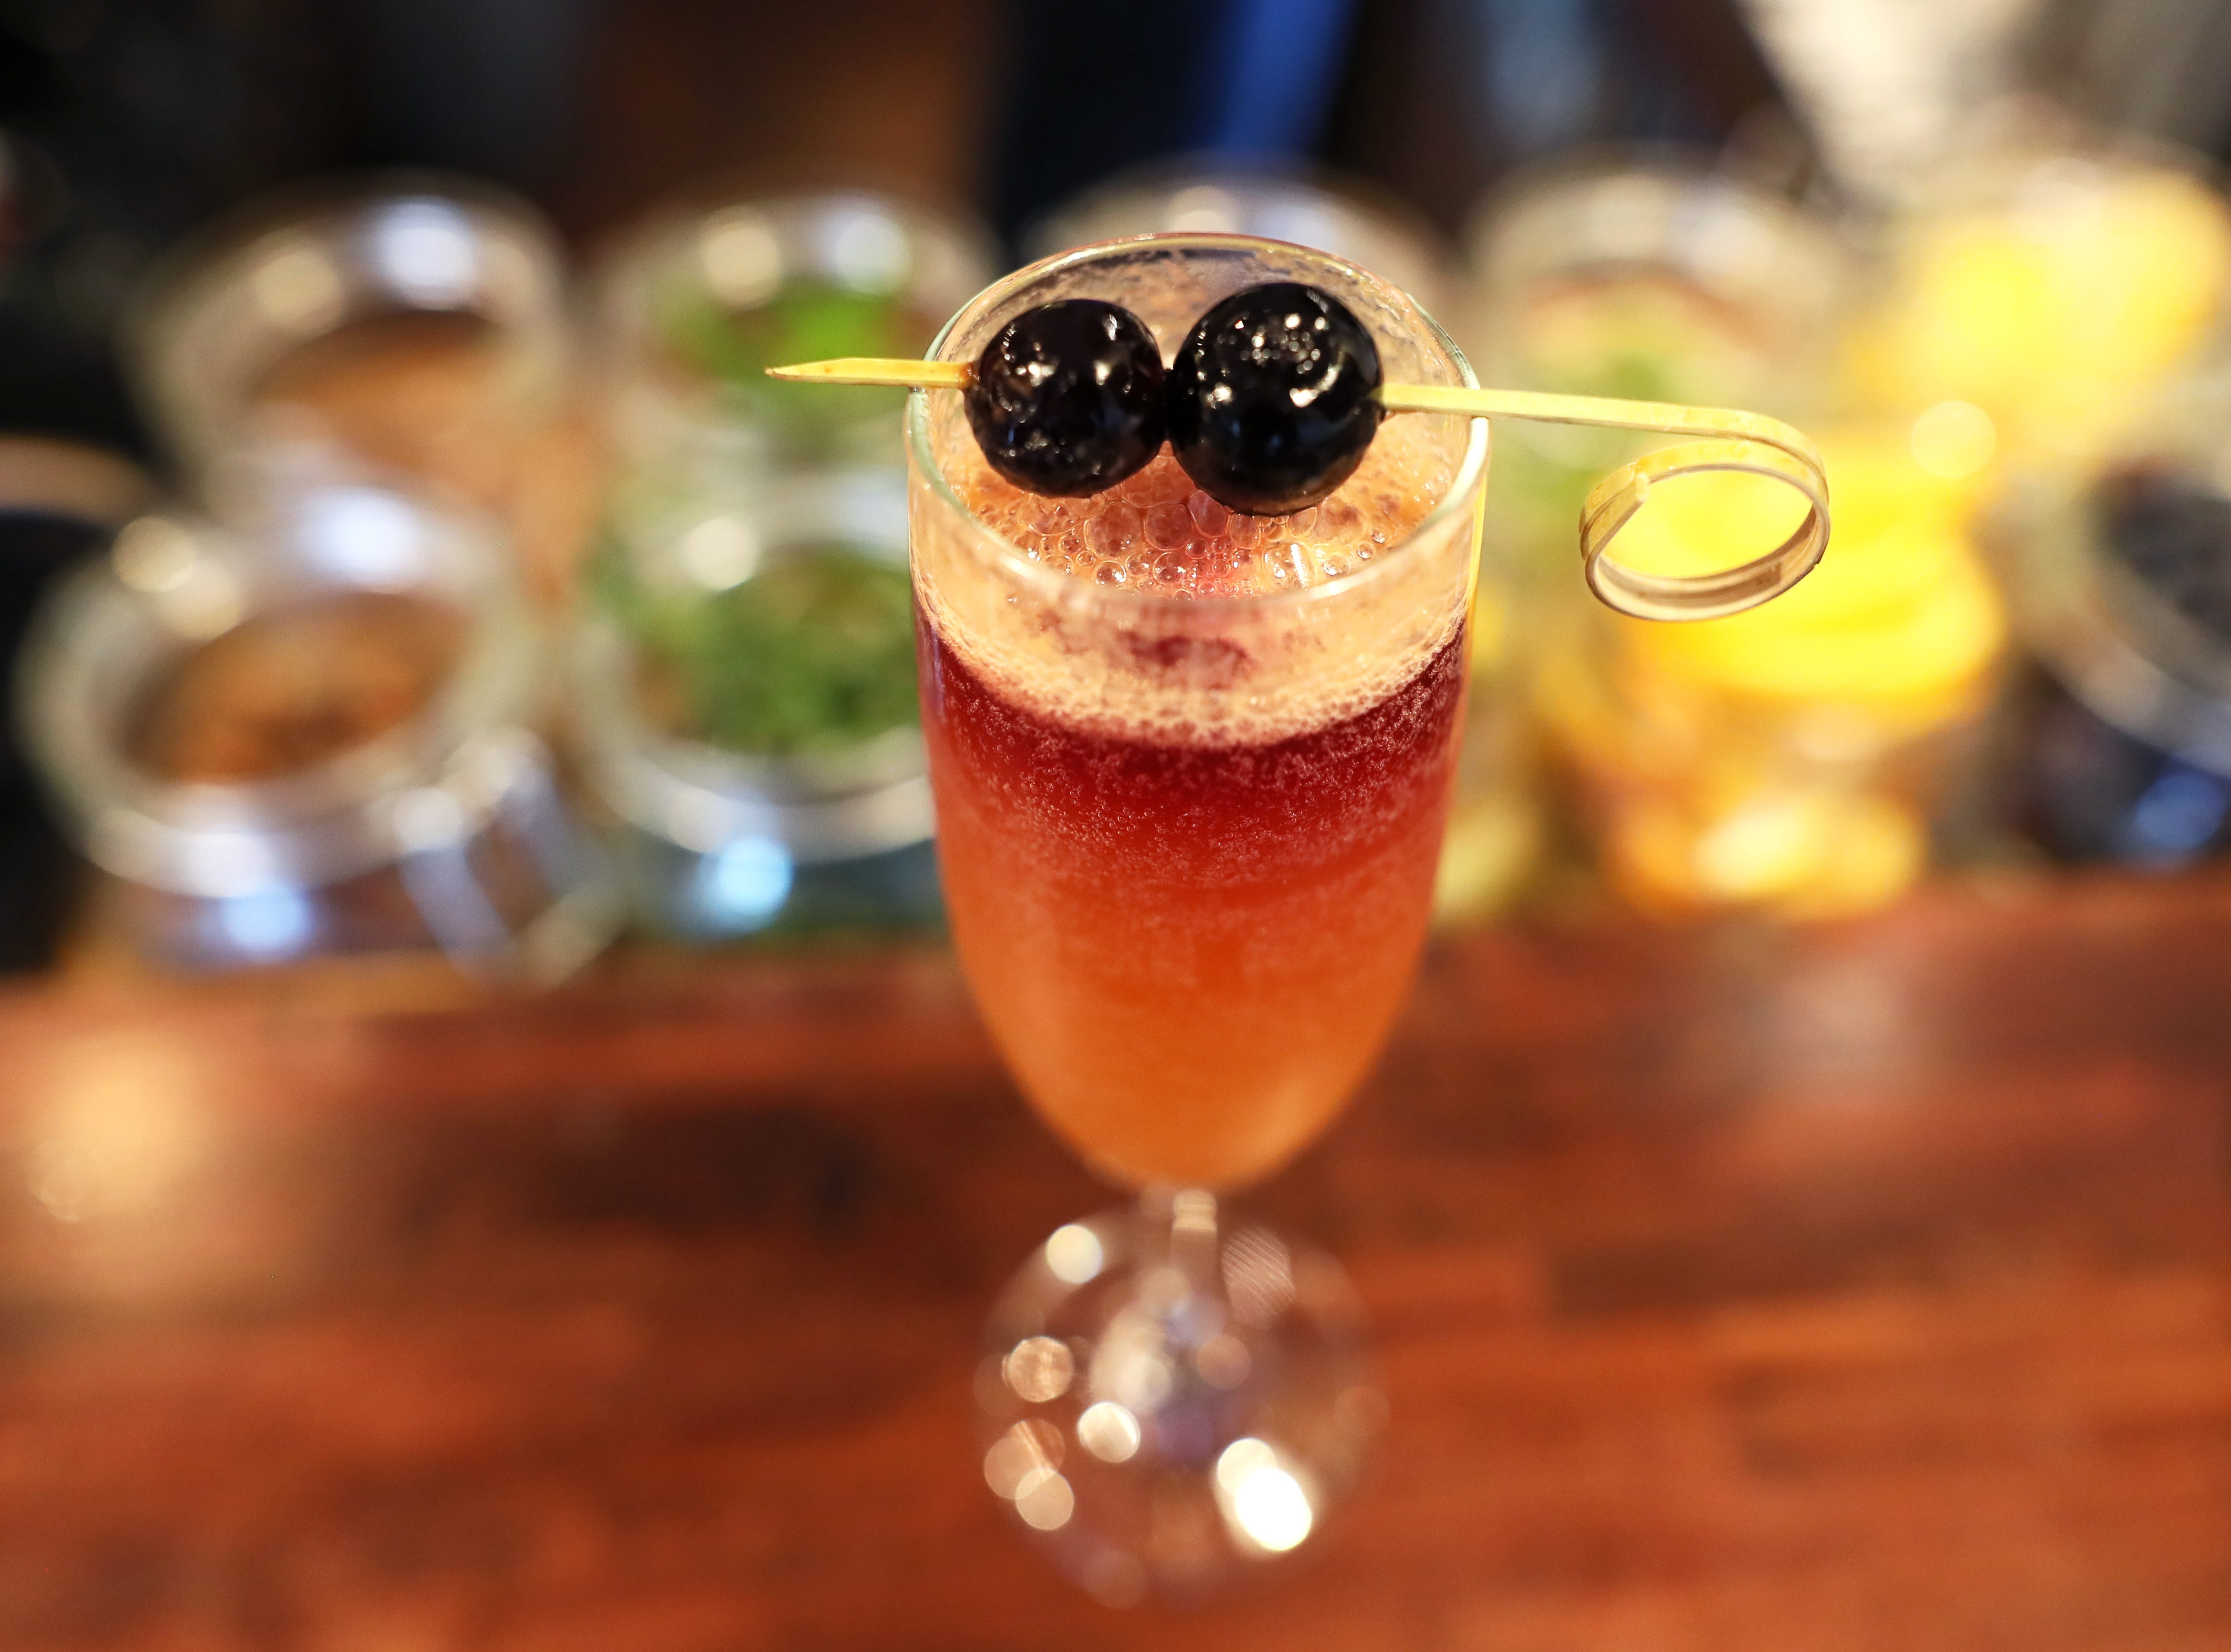 A-Wop-Bop-A-Loo-Lop cocktail with vodka, plum, aperol, lemon, cava, pinot noir, garnished with blue berries at Ecco Restaurant in Midtown's Evergreen Historic District.